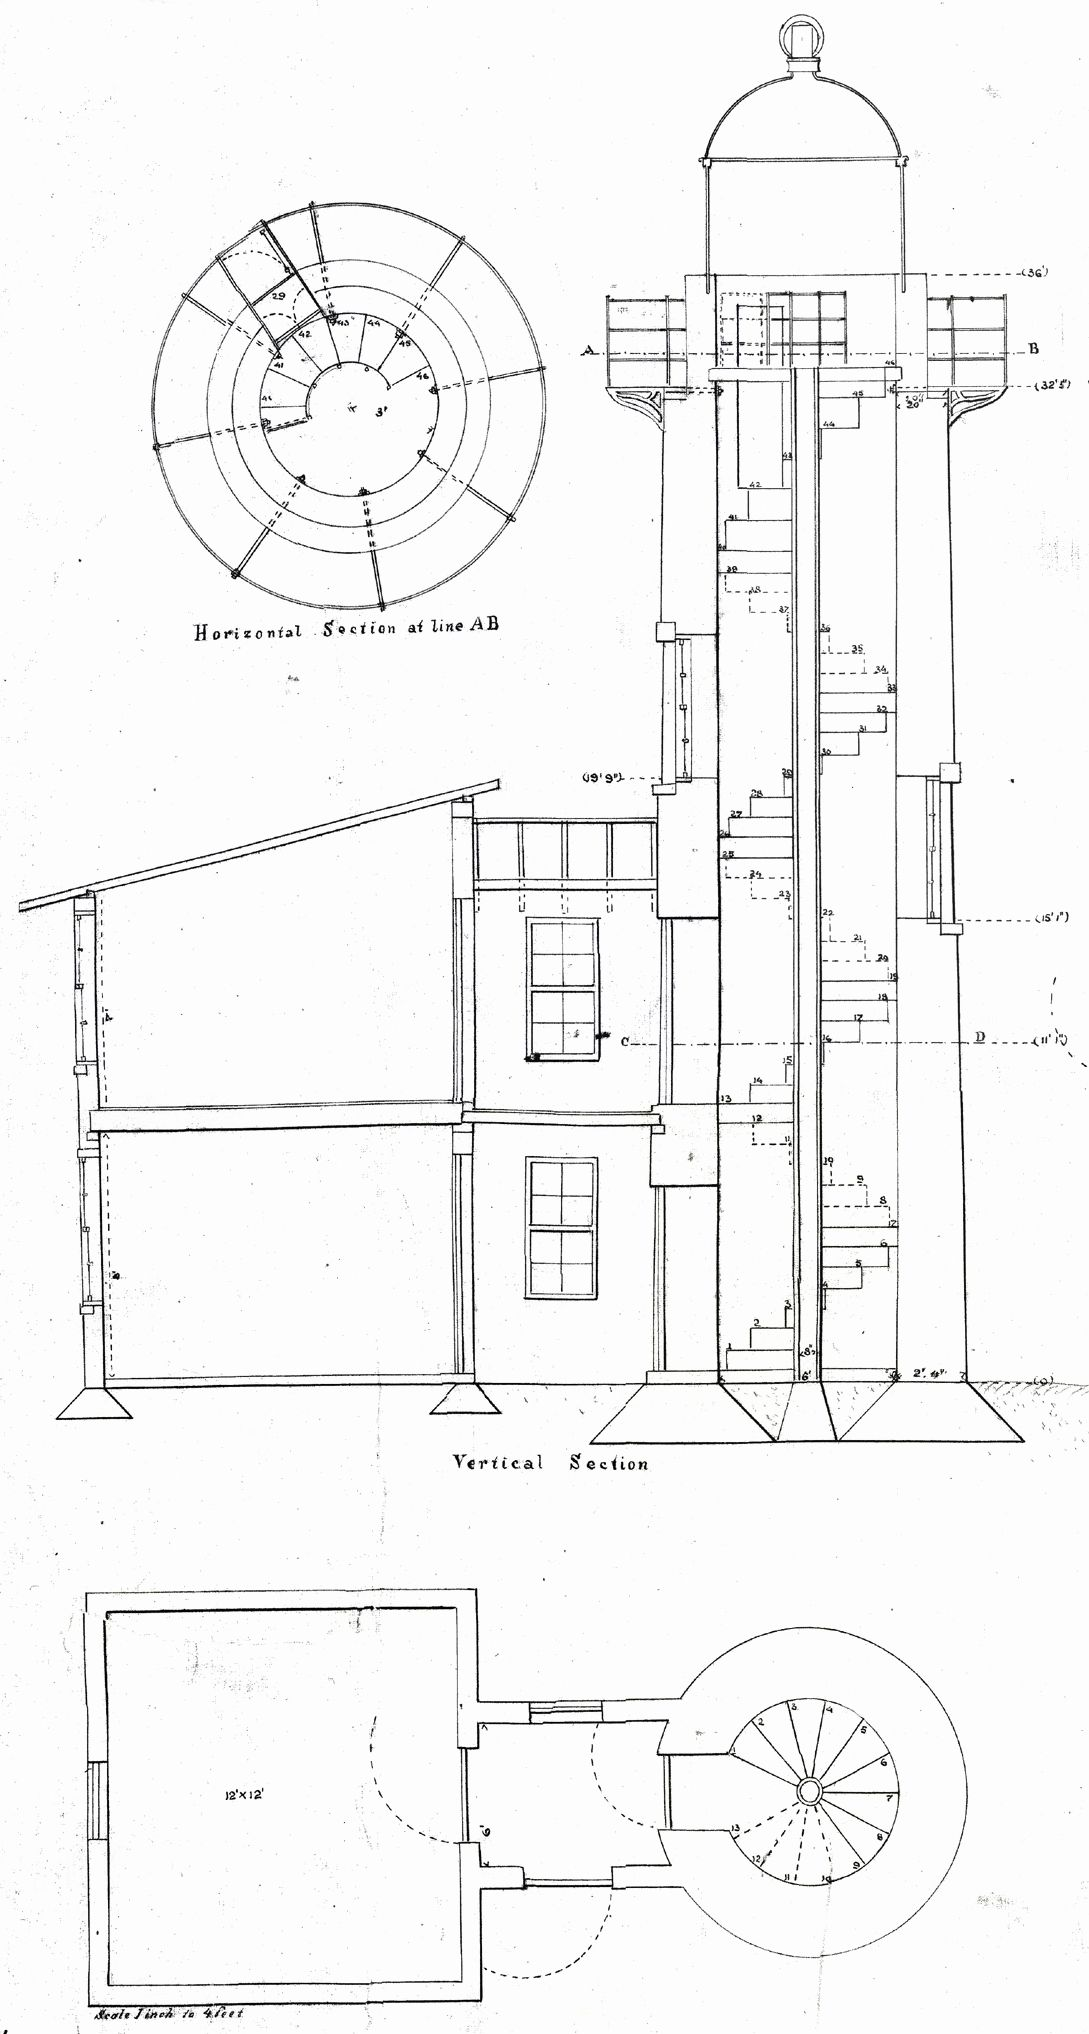 Light House Plans require to build your own home? You've